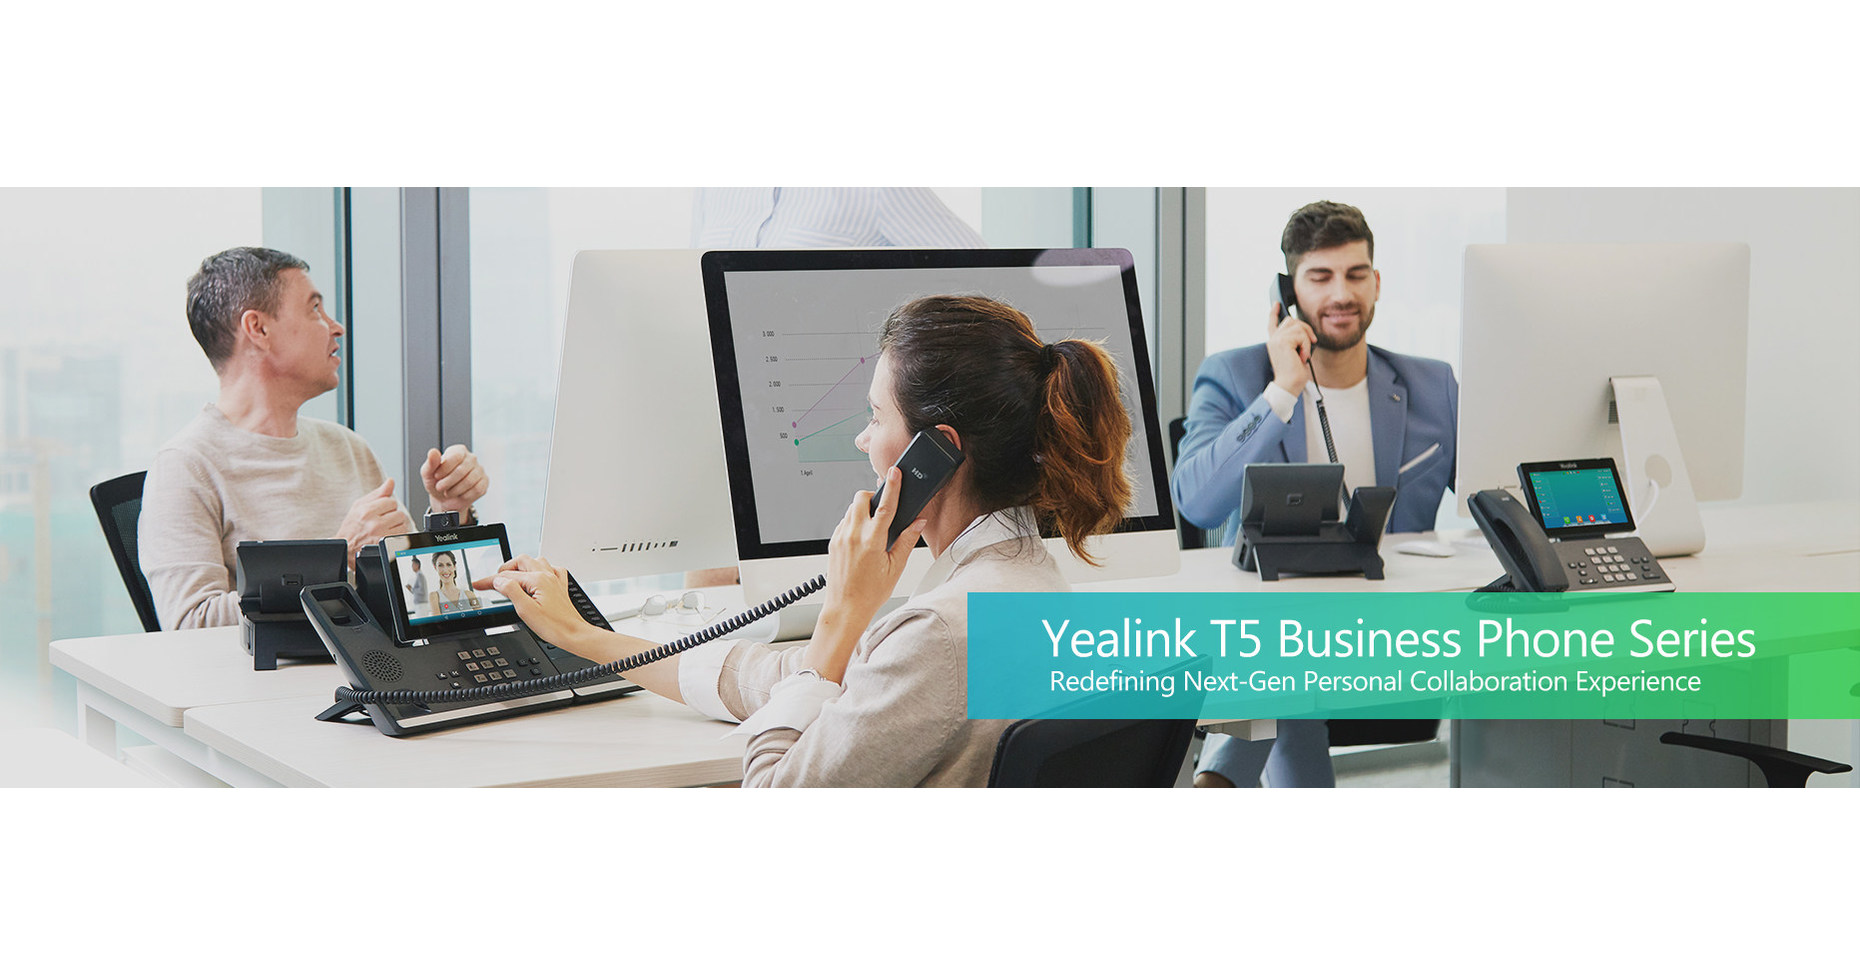 Yealink launches a global roadshow, to exhibit the latest T5